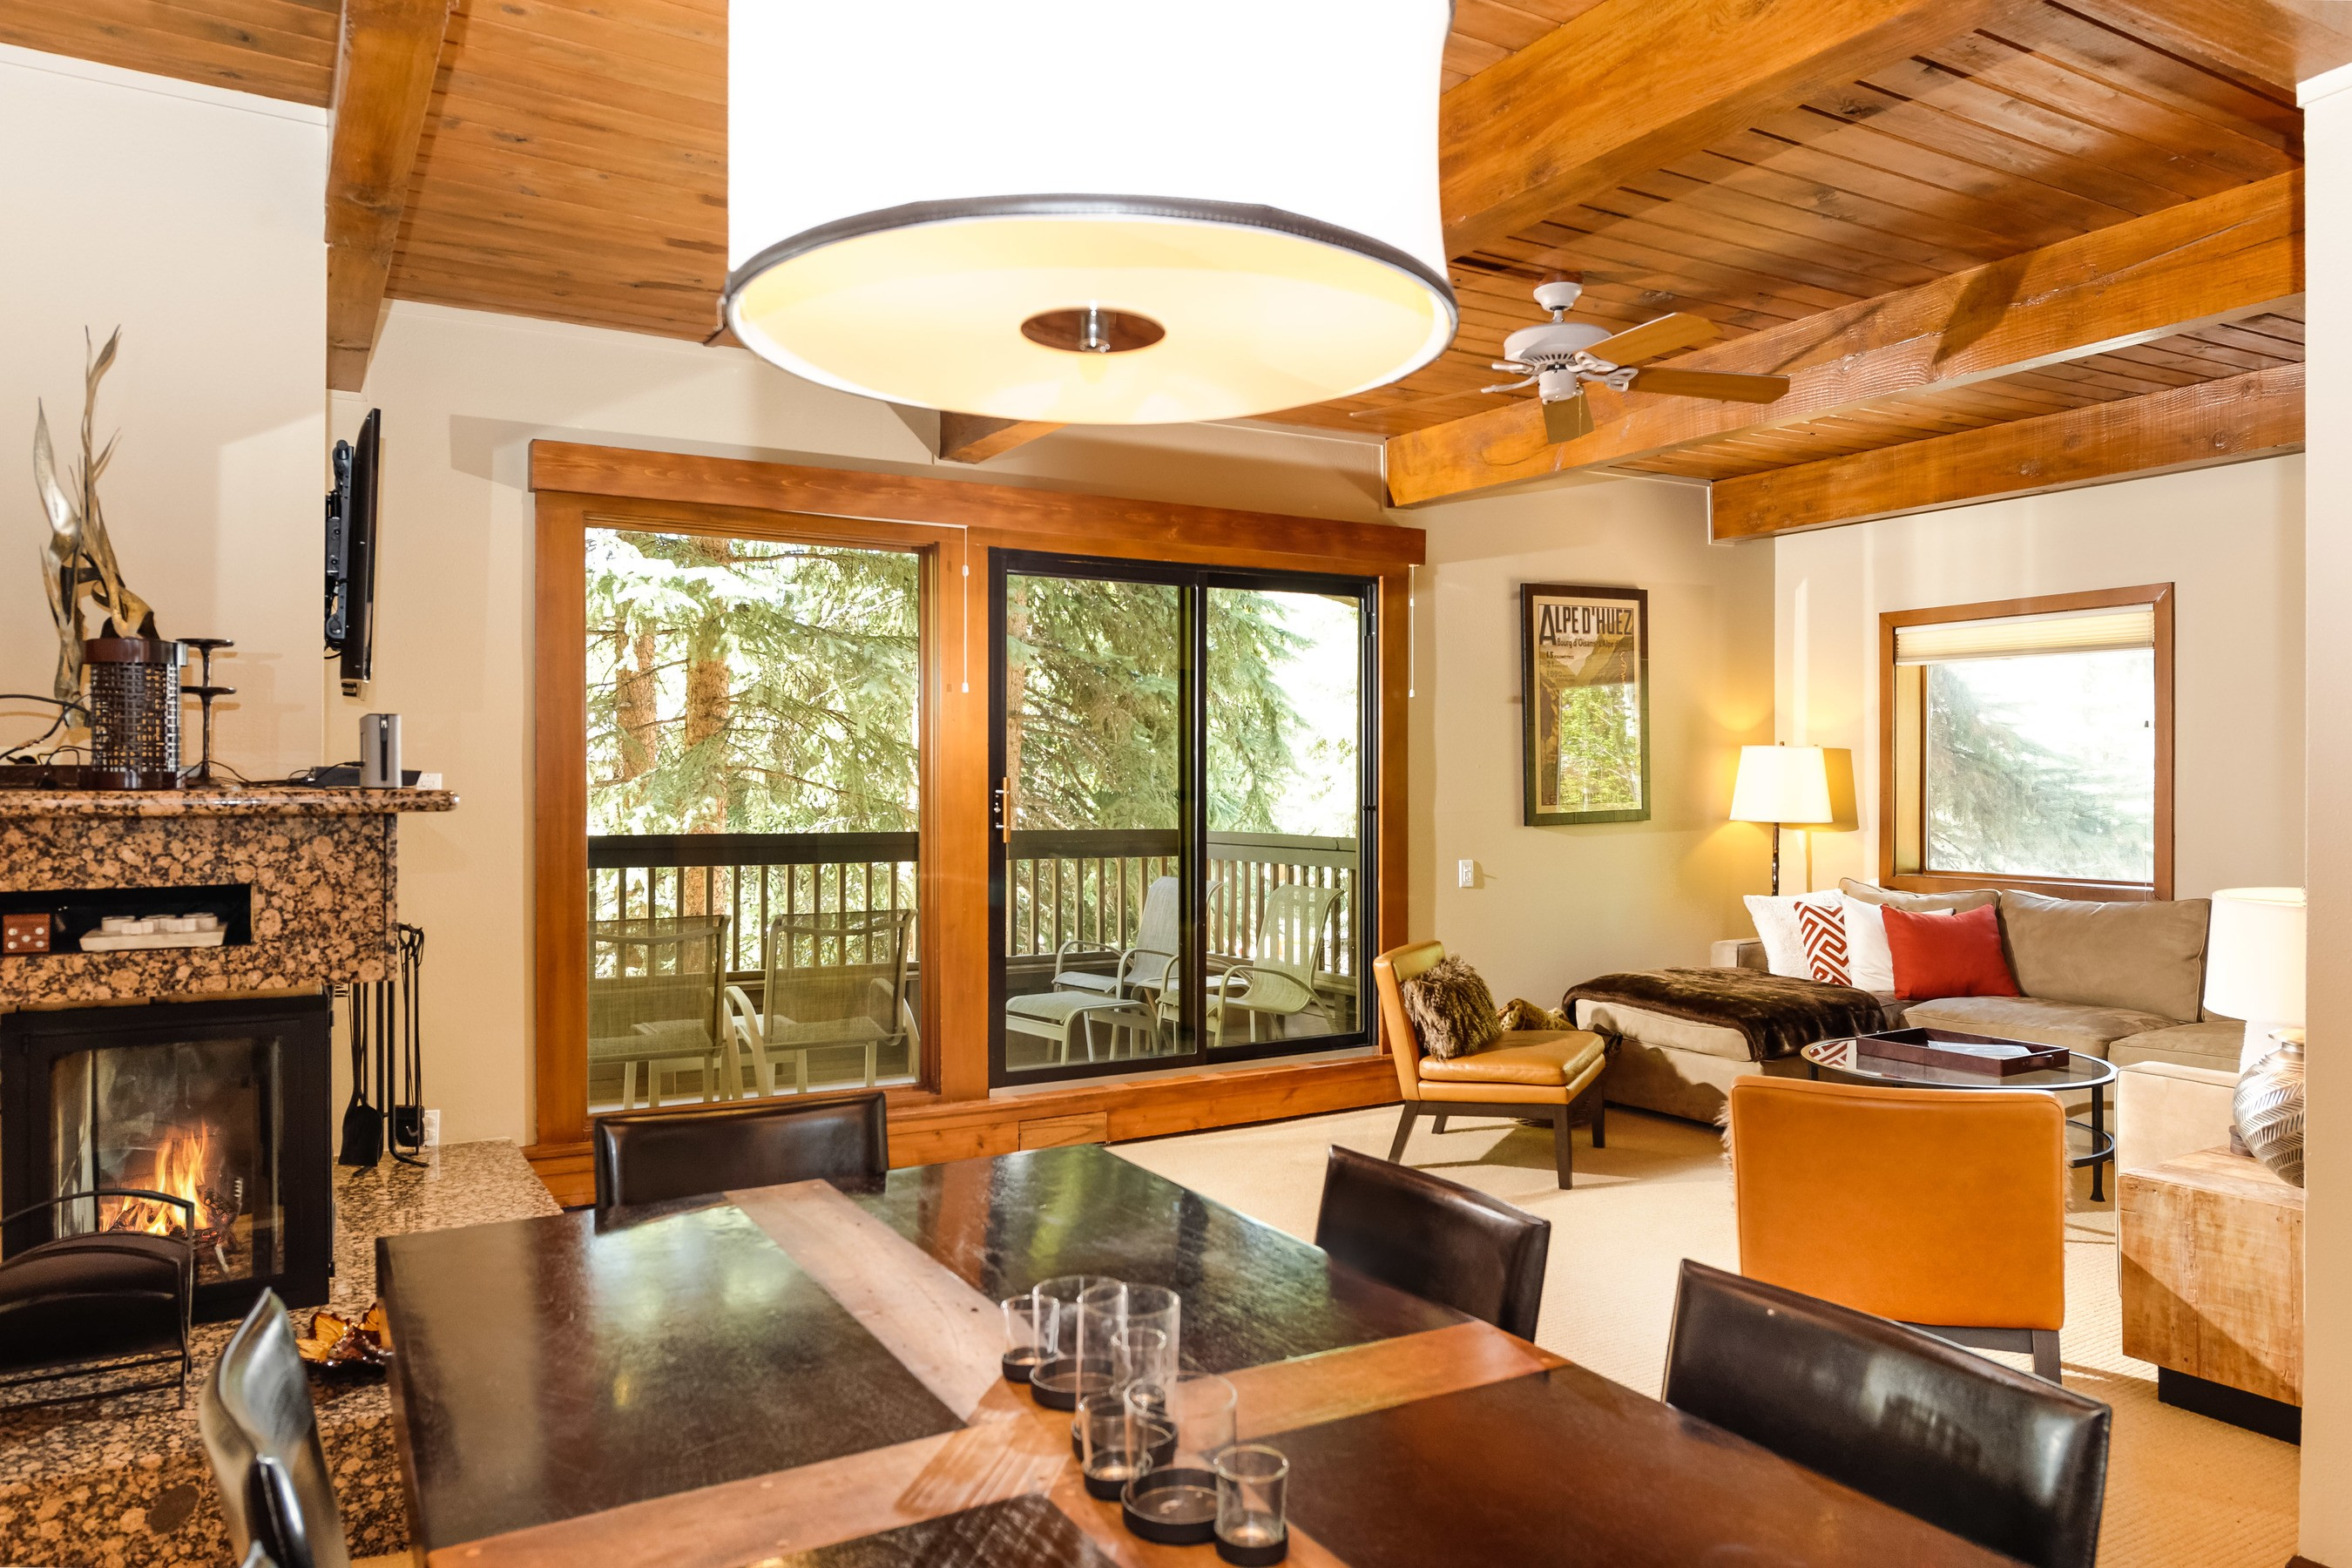 Condominium for Sale at The Gant A204 610 S. West End Street Unit A204 Aspen, Colorado, 81611 United States